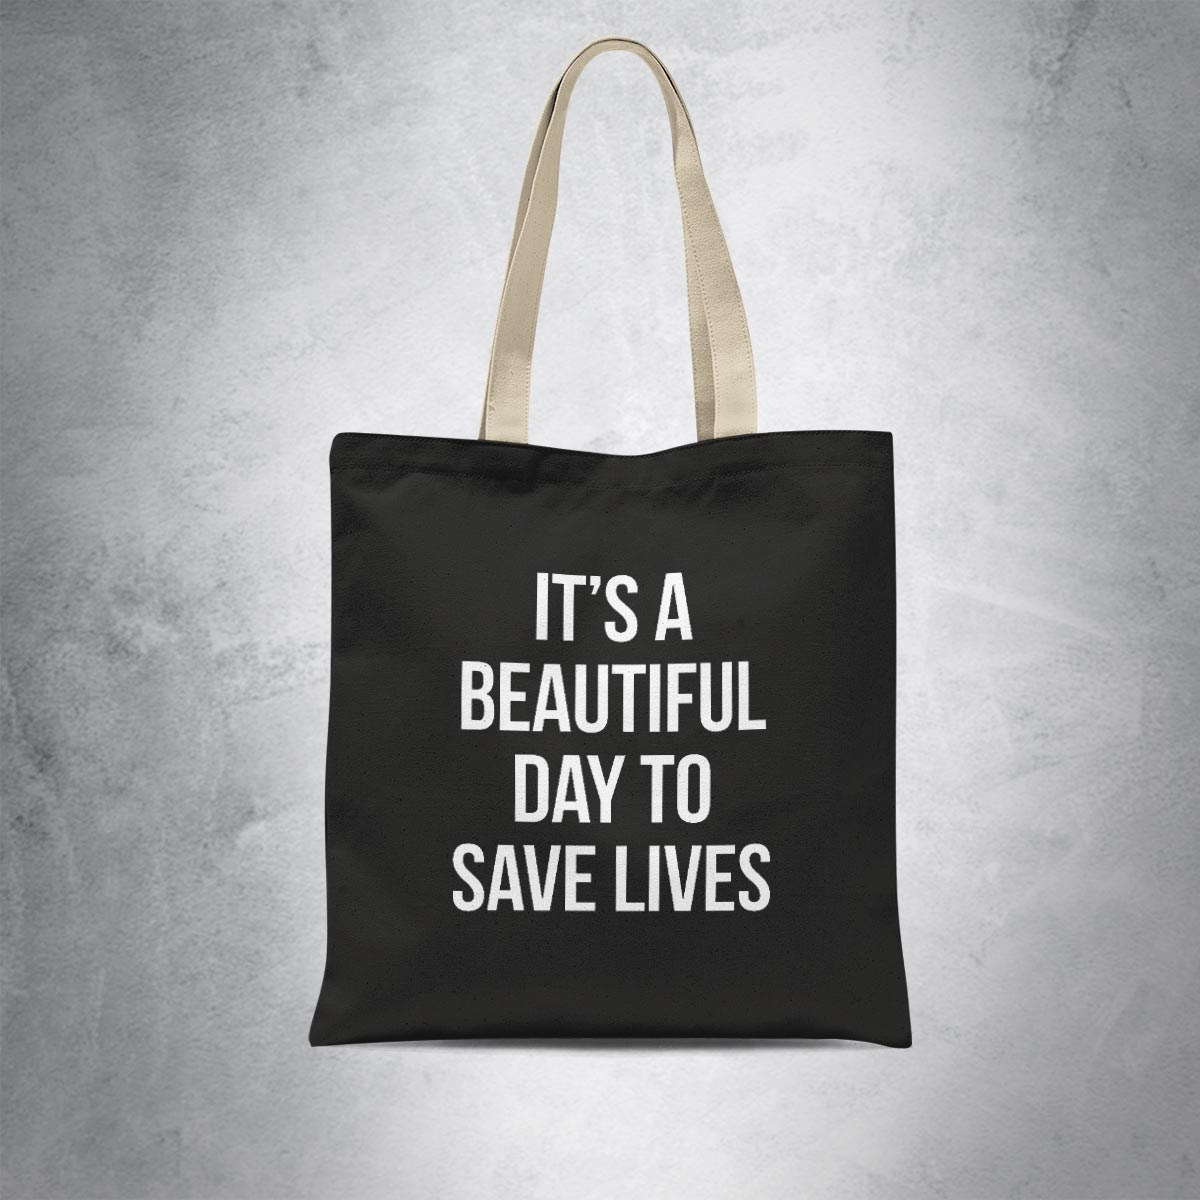 GREY'S ANATOMY - It's a beautiful day